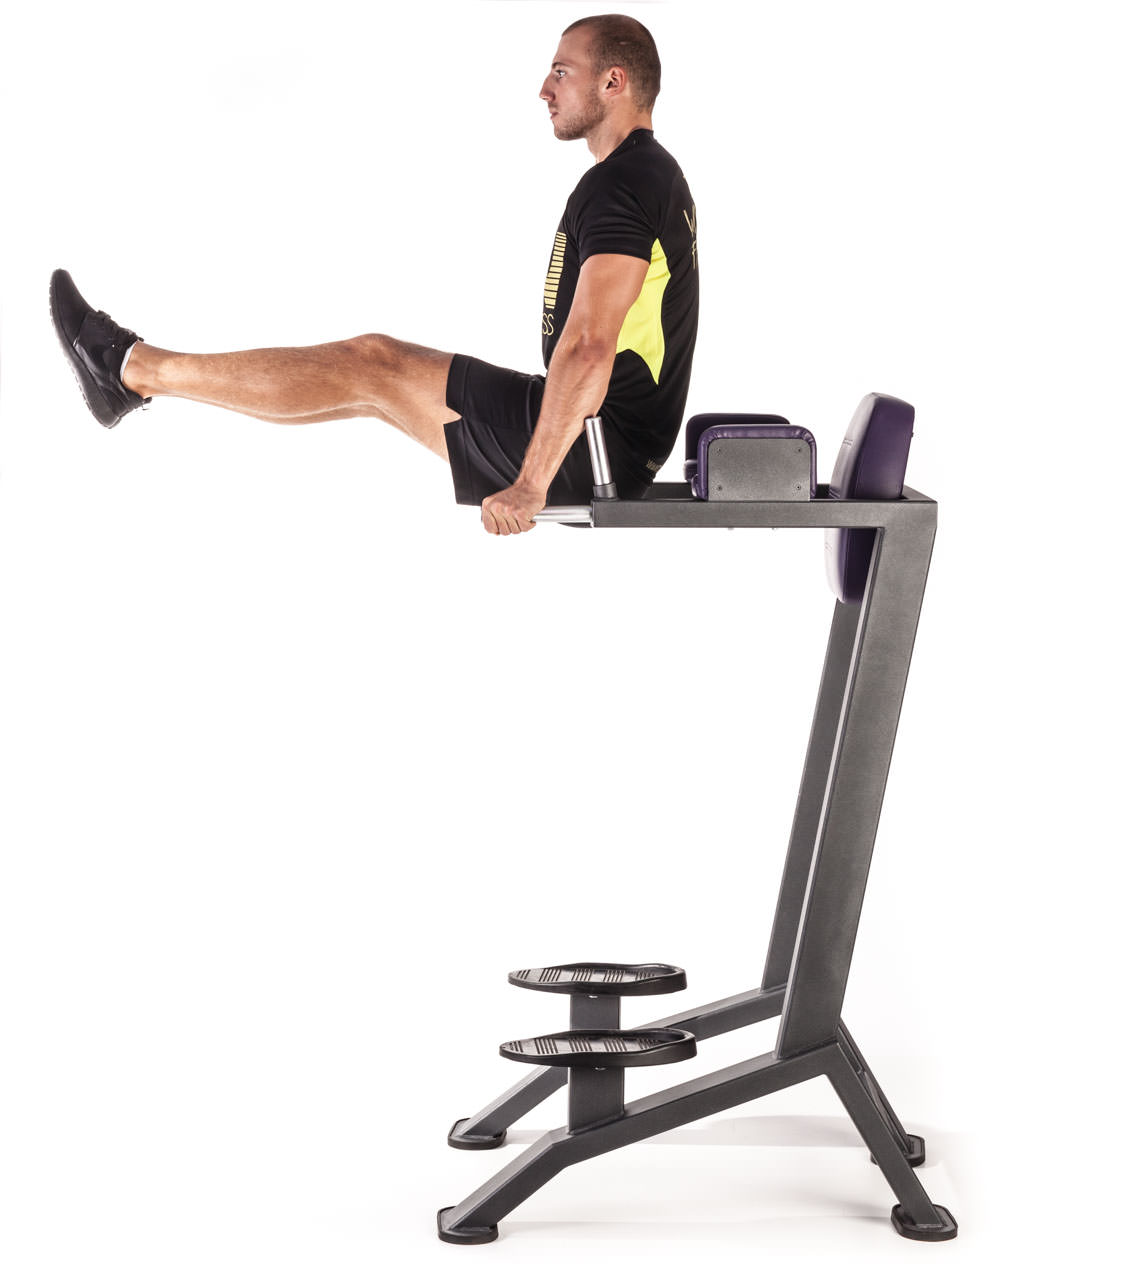 Vertical Bench Leg Raises frame #2